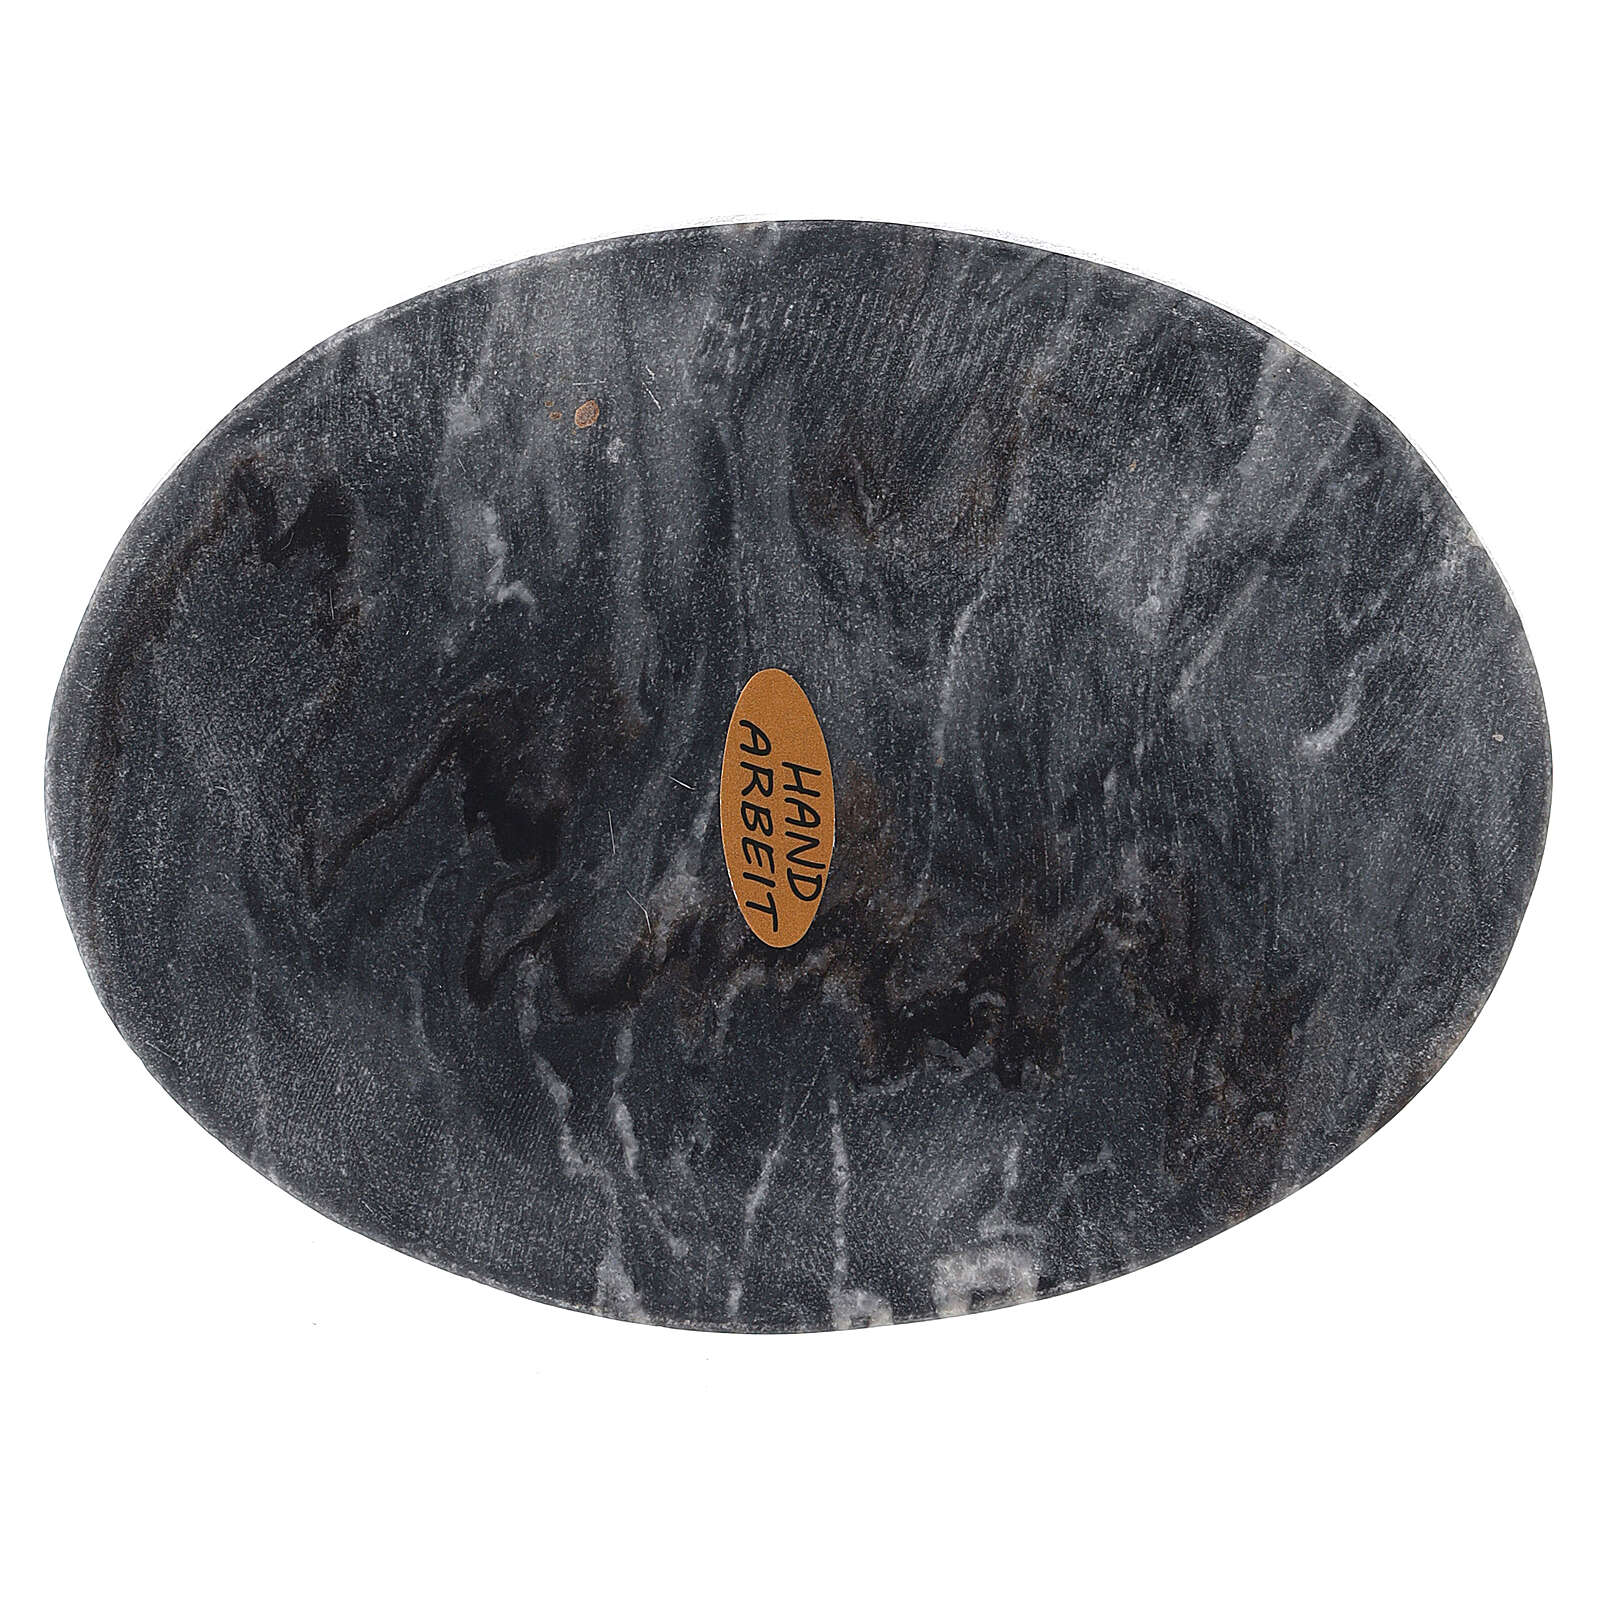 Oval stone candle holder plate 5x4 in 3